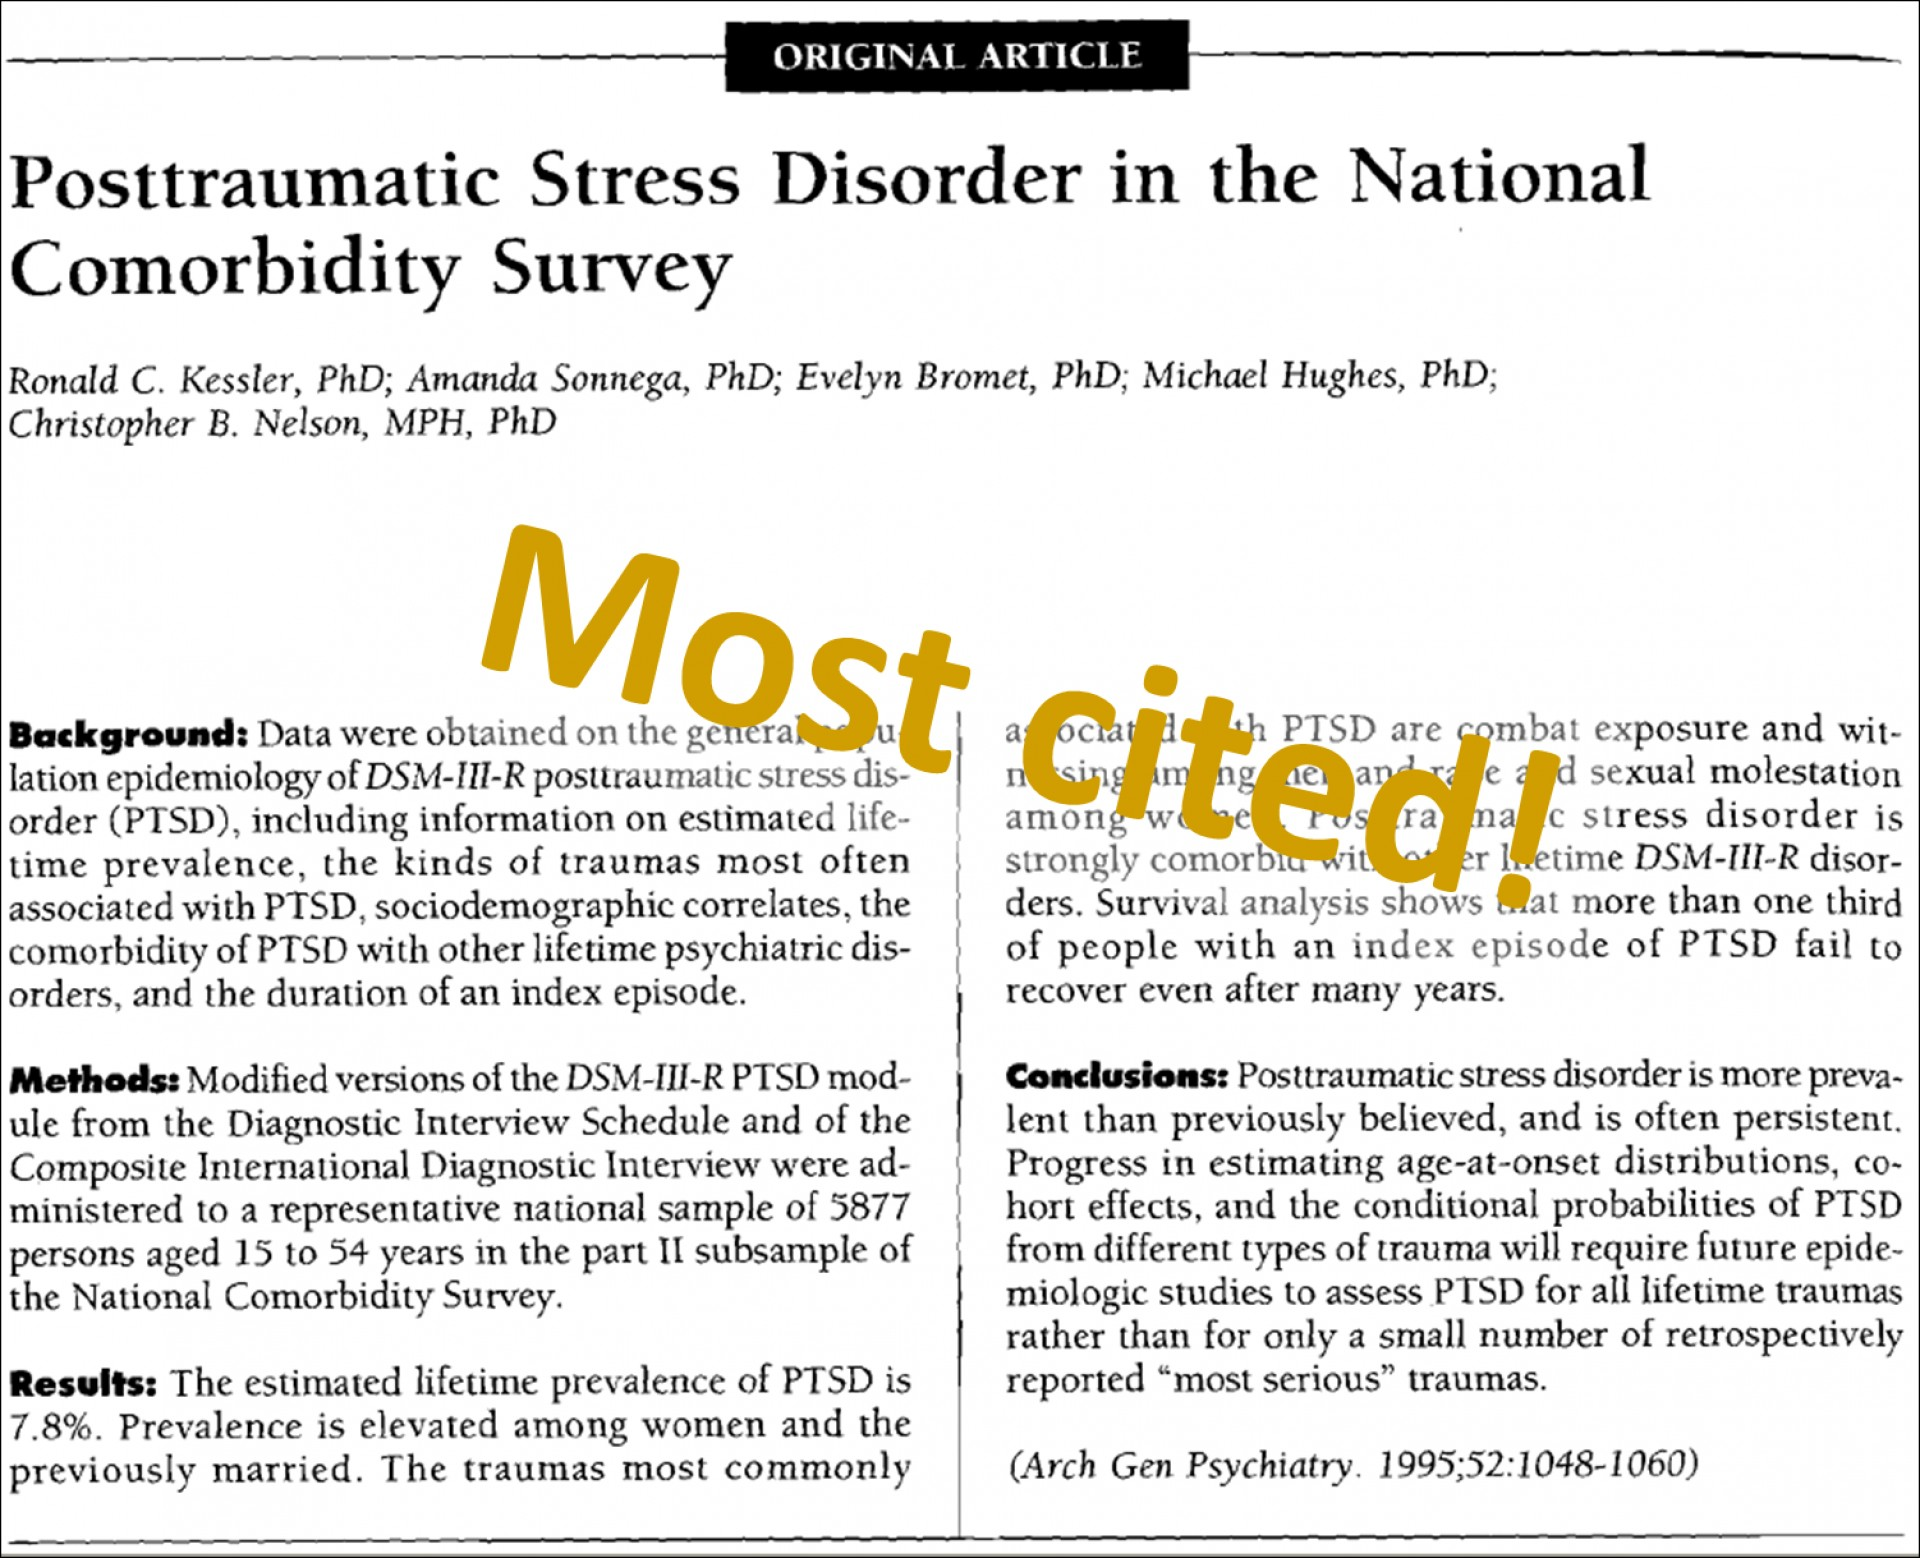 001 Ptsd Research Paper Trauma Recovery Most Cited Amazing Outline Introduction Argumentative 1920